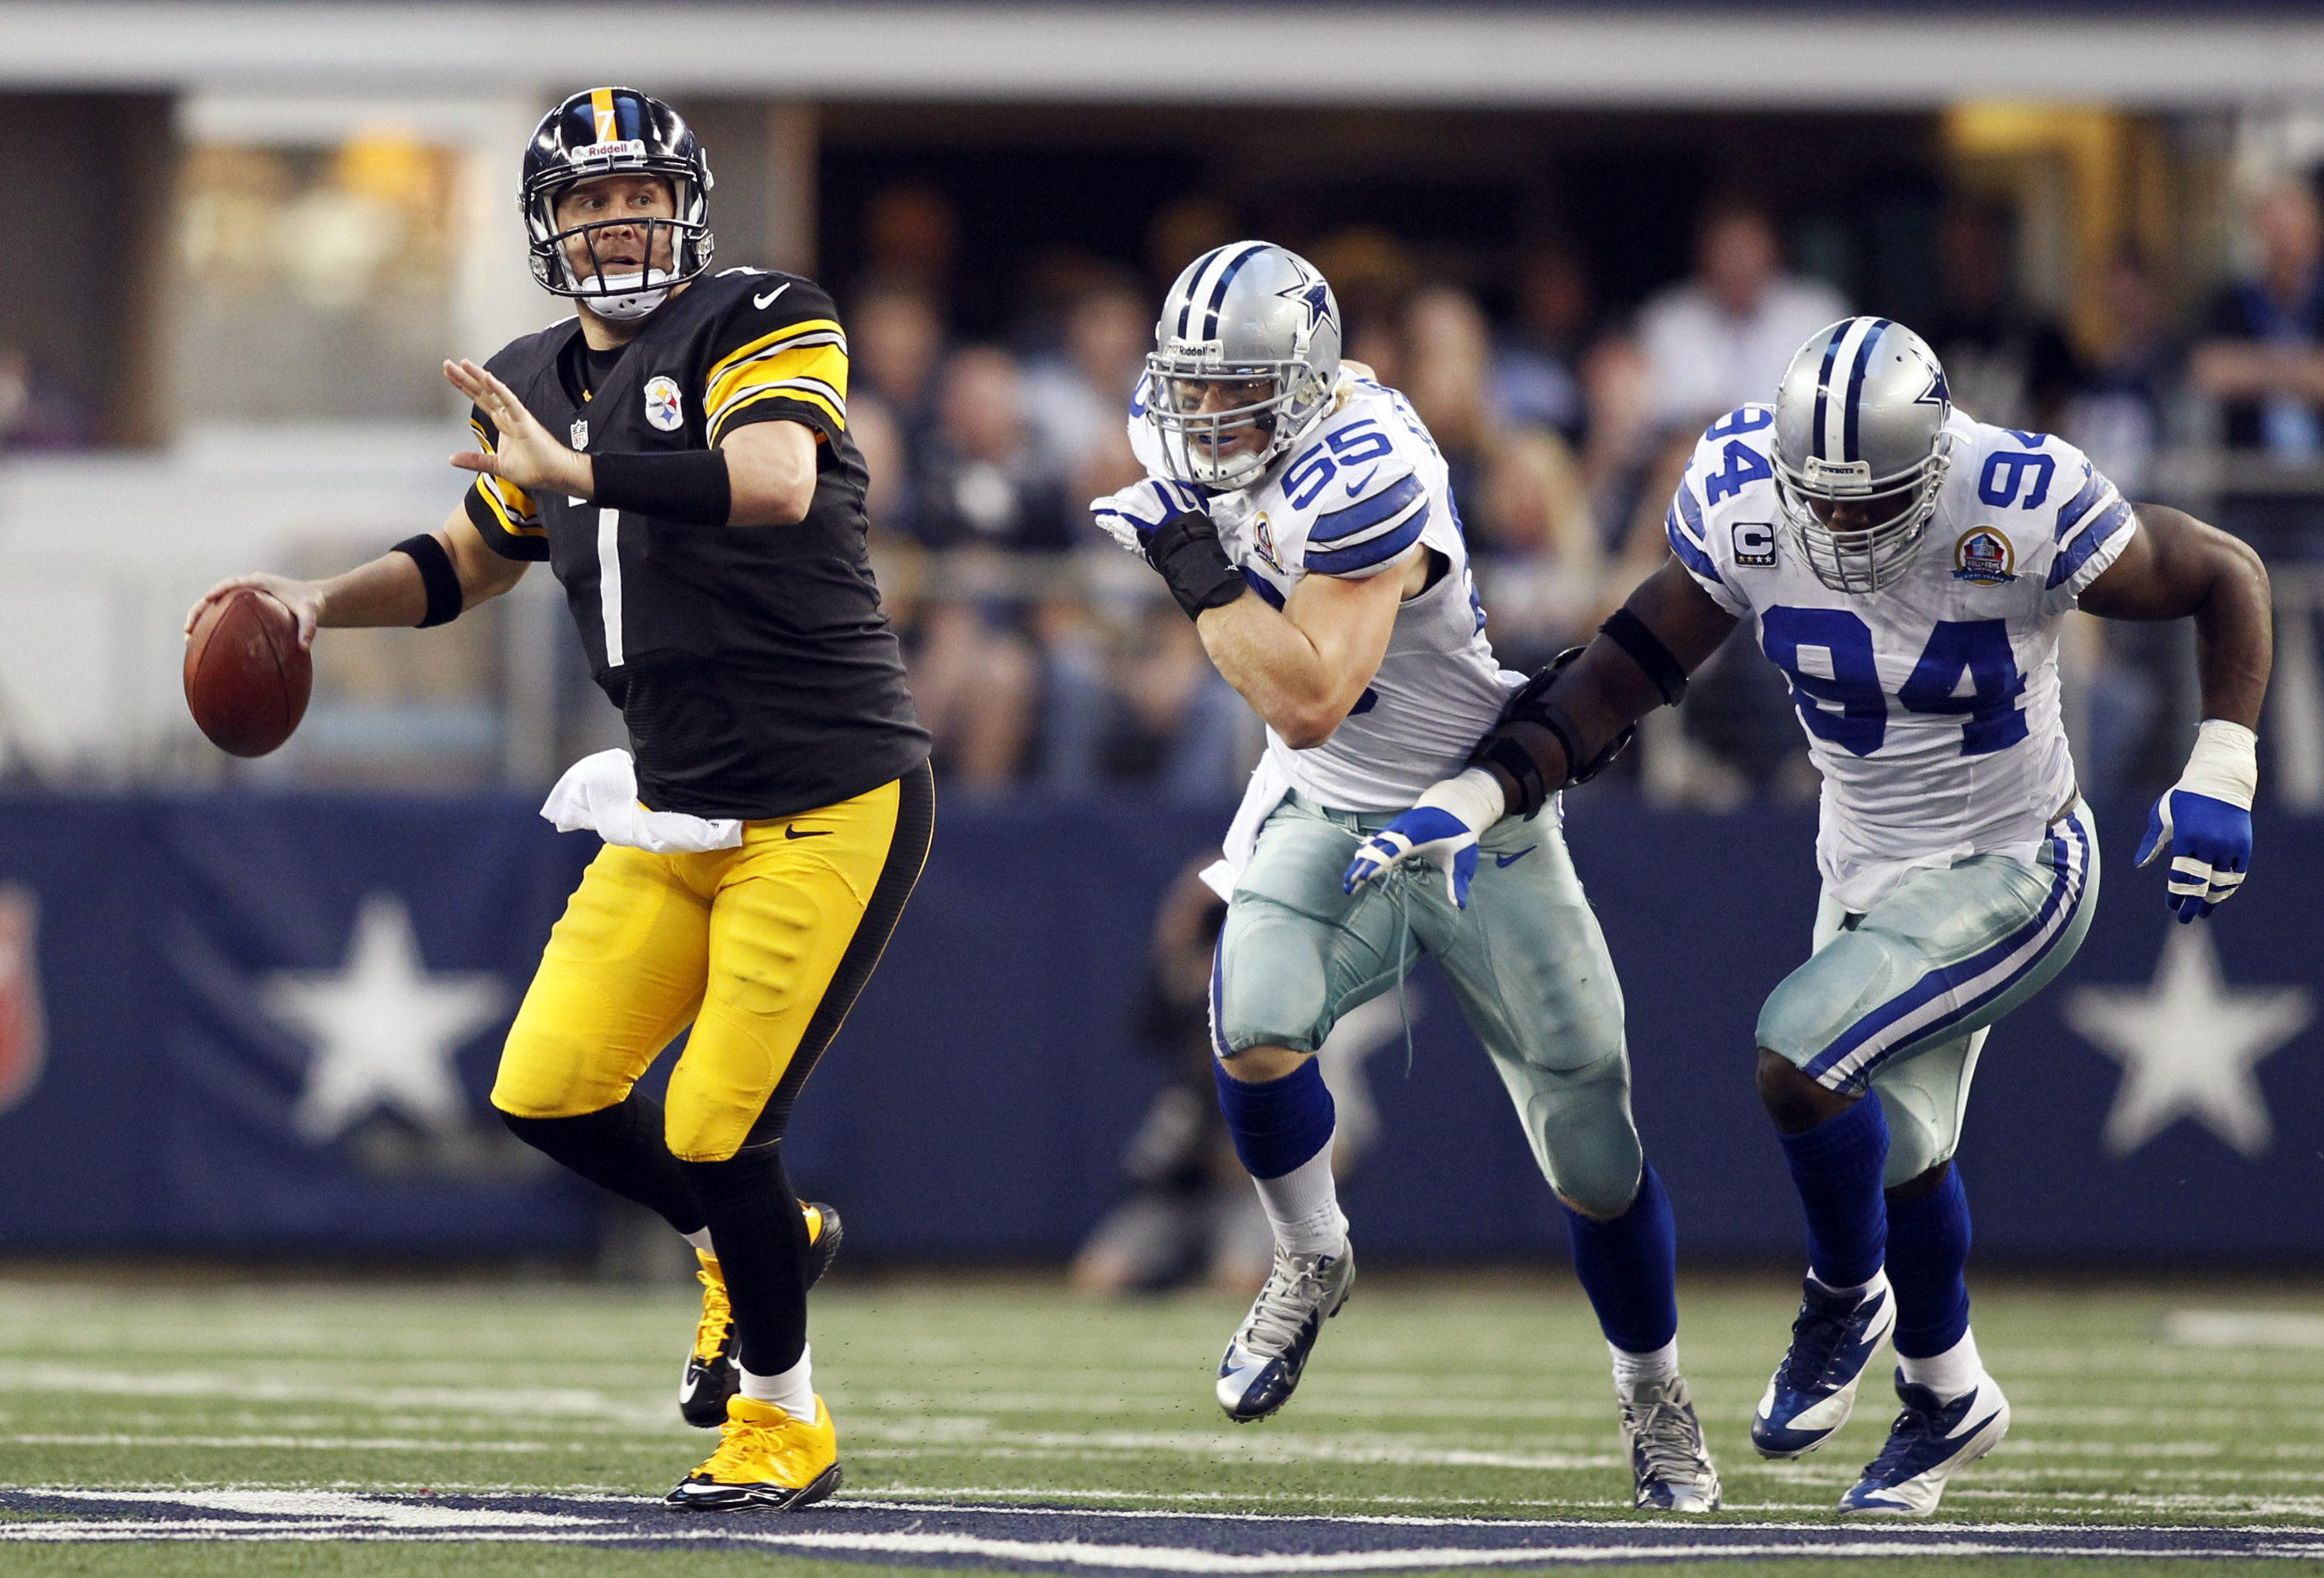 Ben Roethlisberger was one of nine players from the Pittsburgh Steelers selected - a high for this season